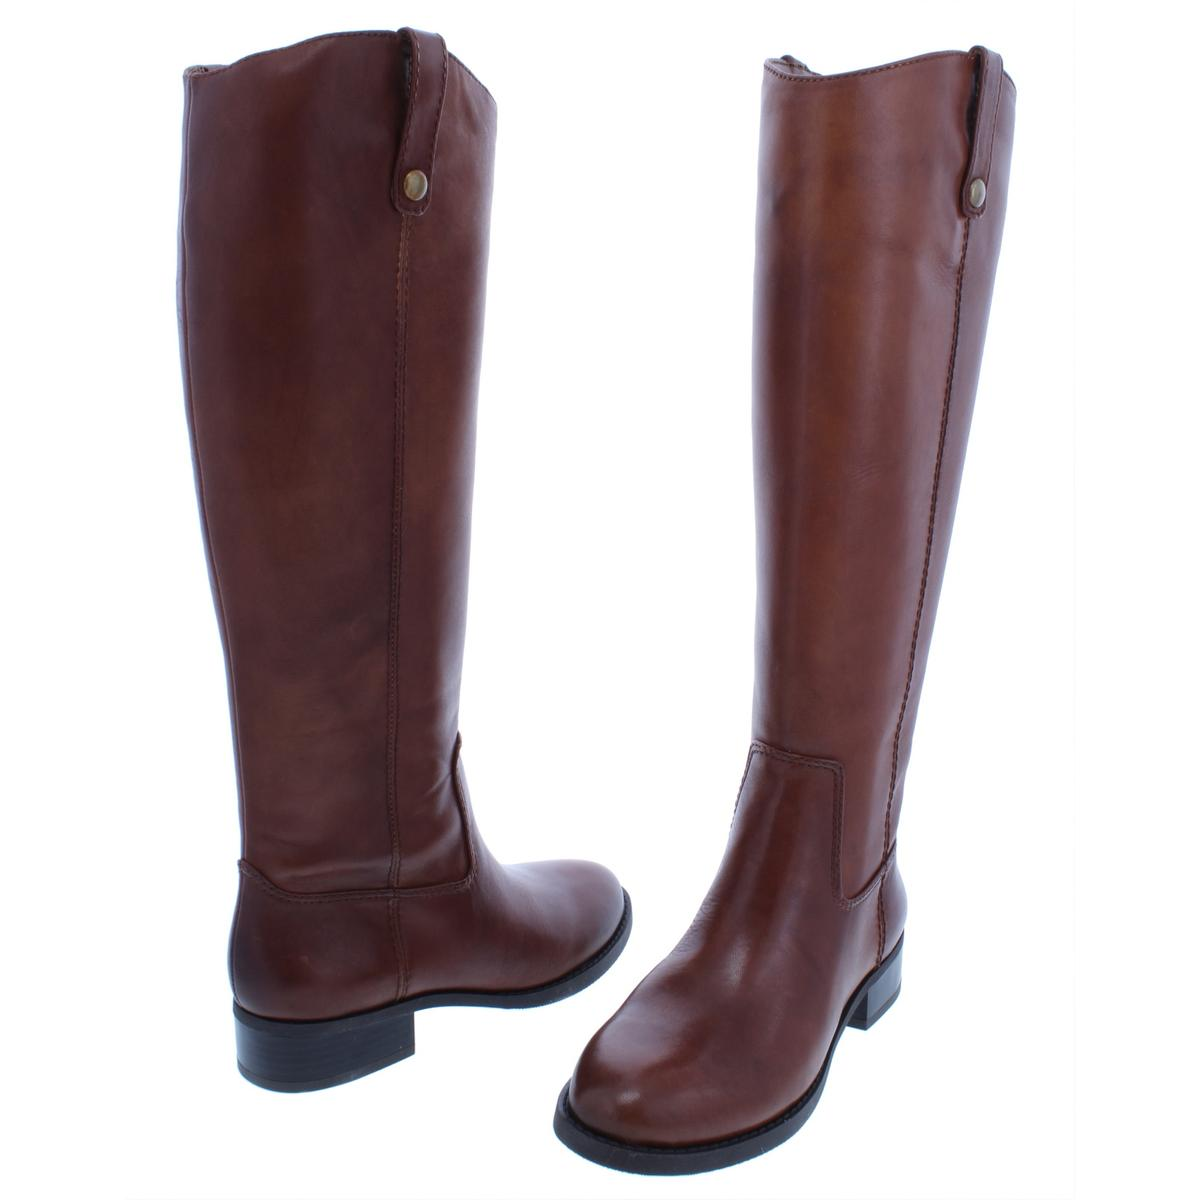 INC-Womens-Fawne-Leather-Knee-High-Tall-Riding-Boots-Shoes-BHFO-5020 thumbnail 8